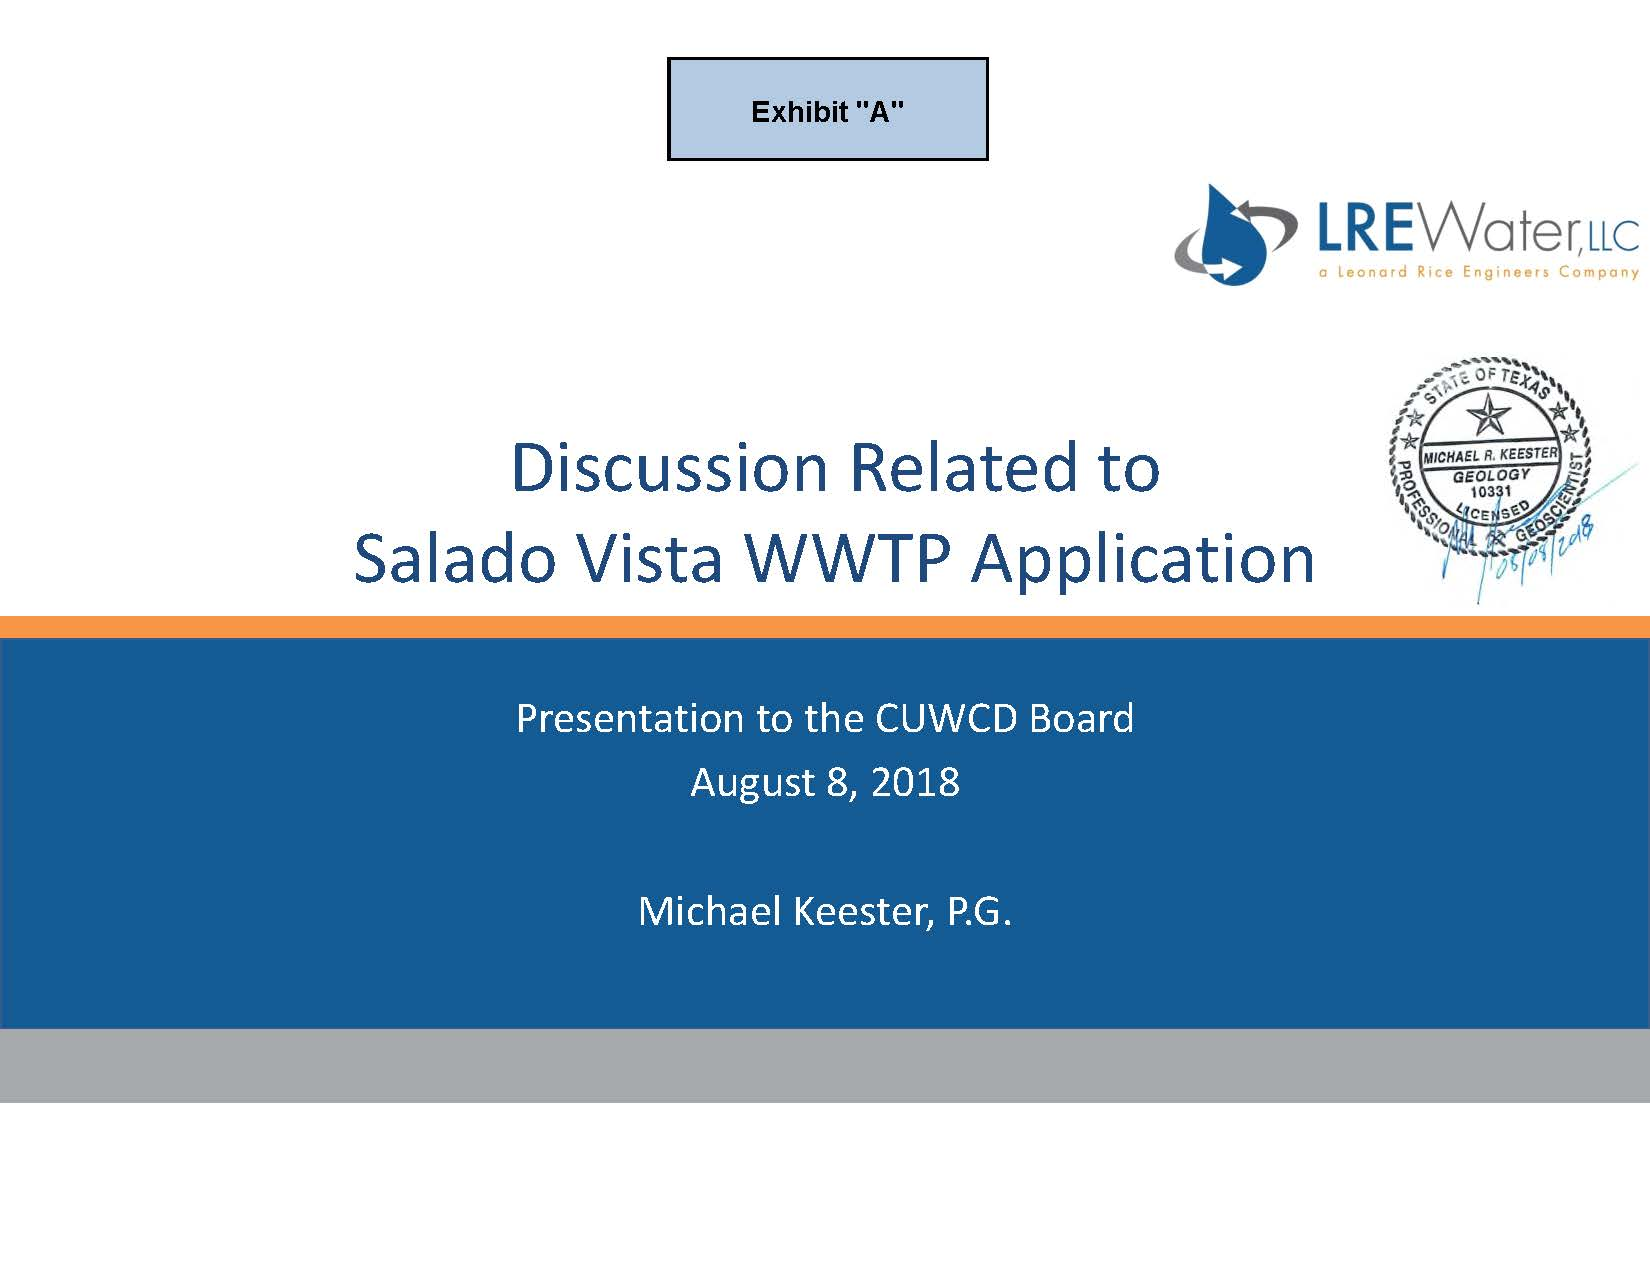 CUWCD-Public-Comments-on-Salado-Vista-WWTP-TPDES-PermitApplication_Page_05